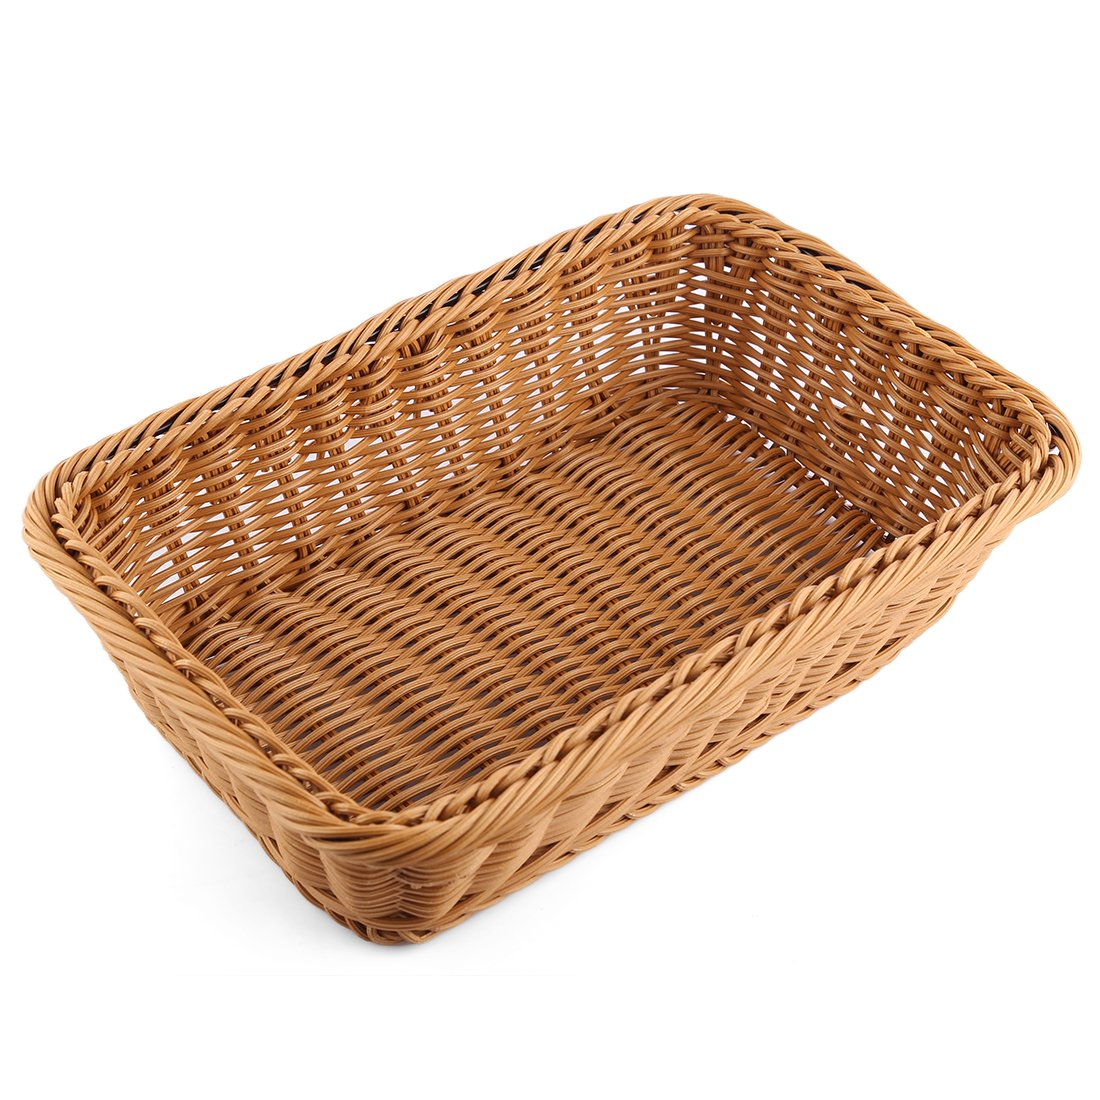 Bread Basket, FenglingTech Wicker Fruit Basket - 11.8 x 7.9 x 2.8 inches - Style D